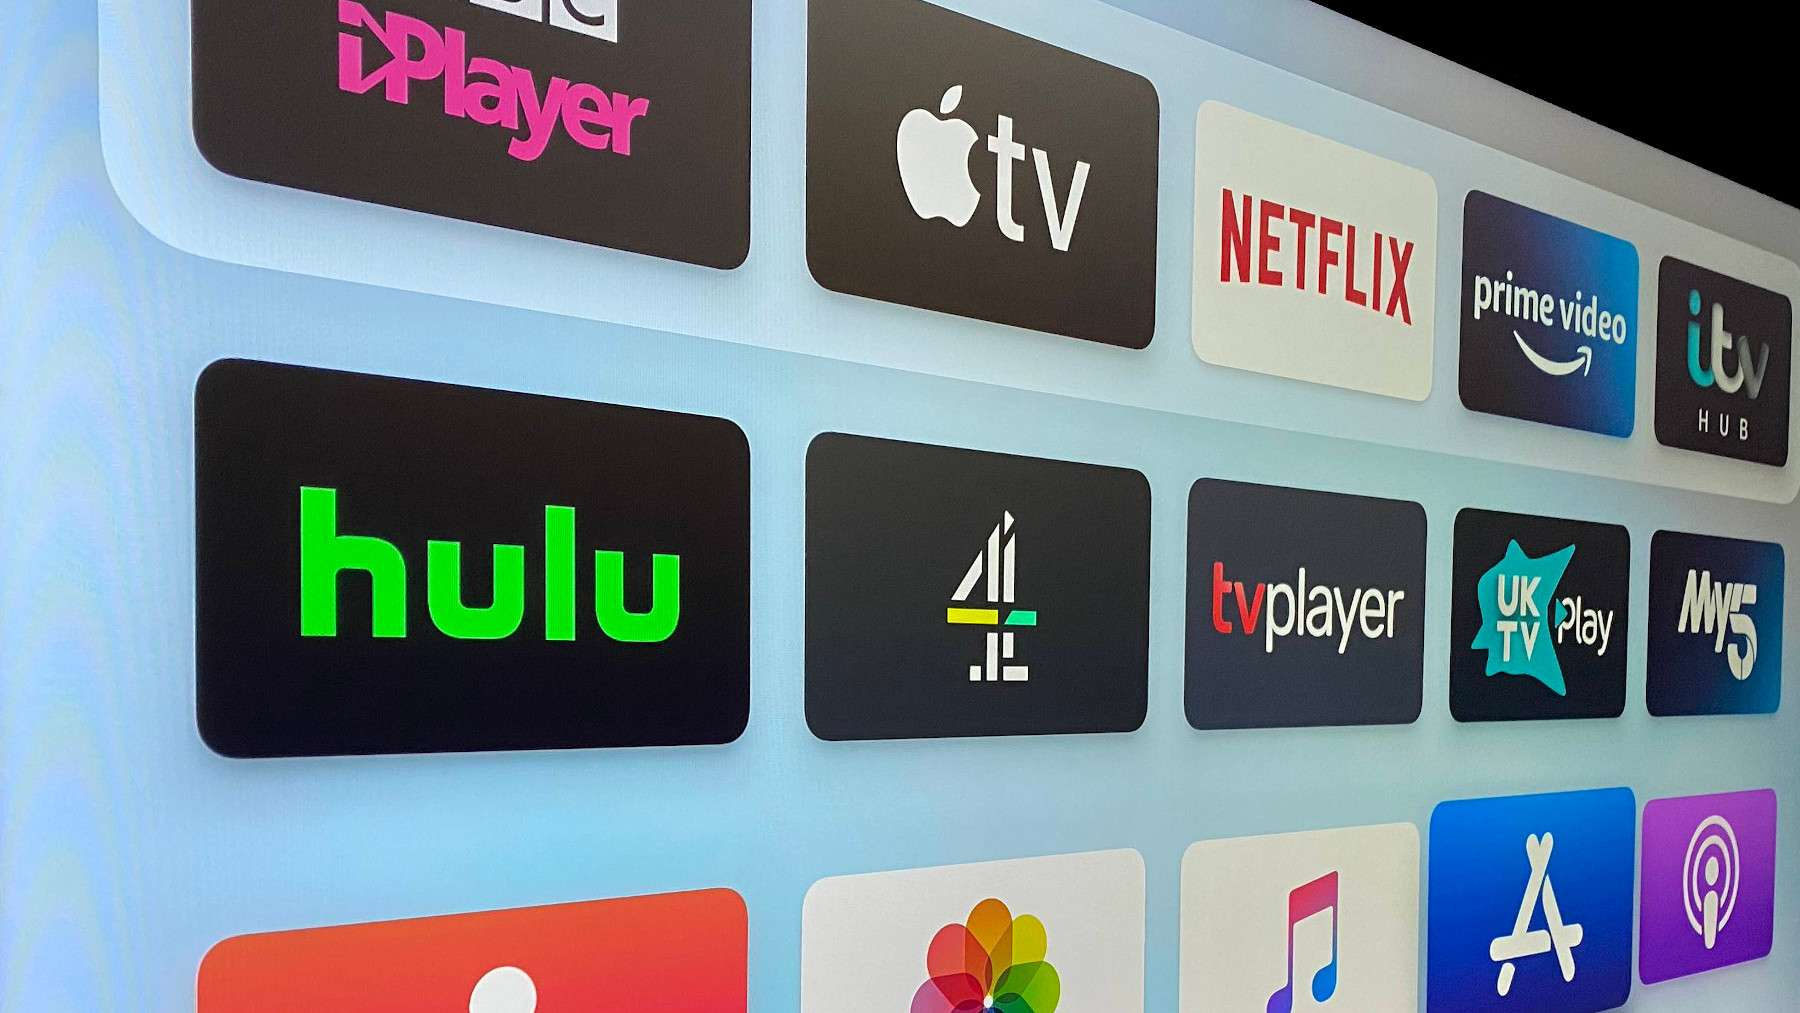 How to watch US Netflix on Apple TV